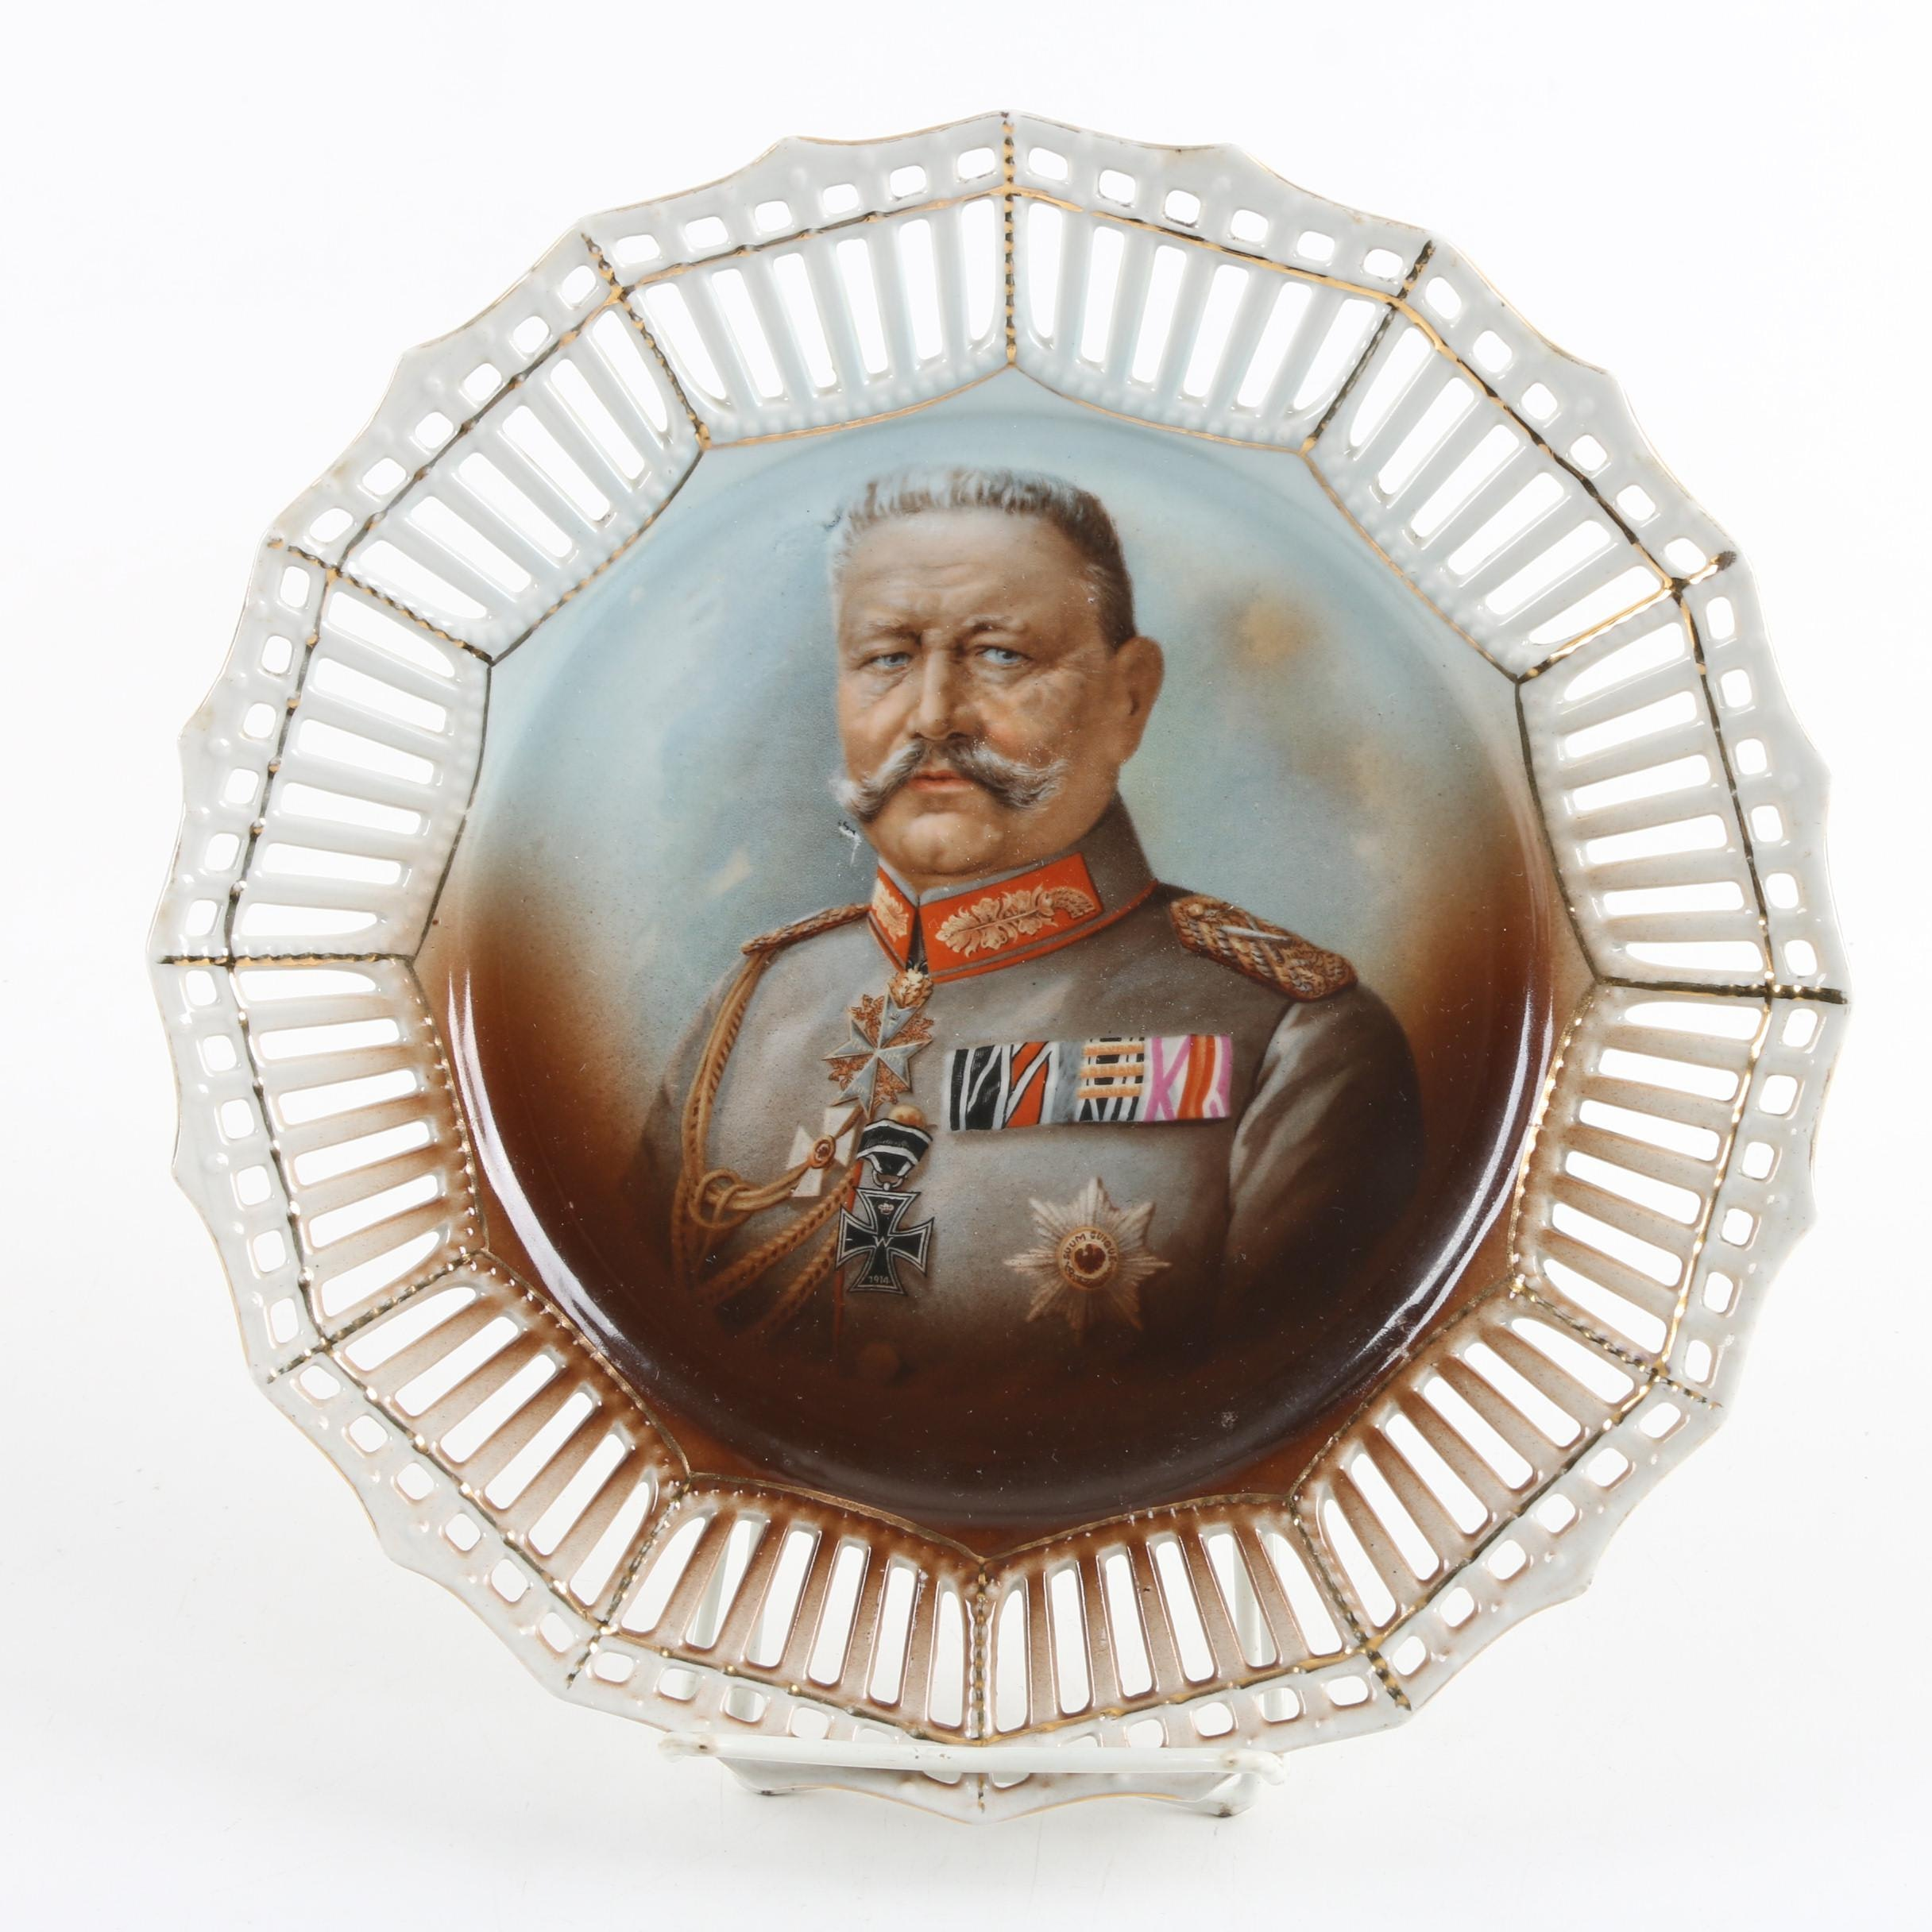 World War One General Paul von Hindenburg Commemorative Plate